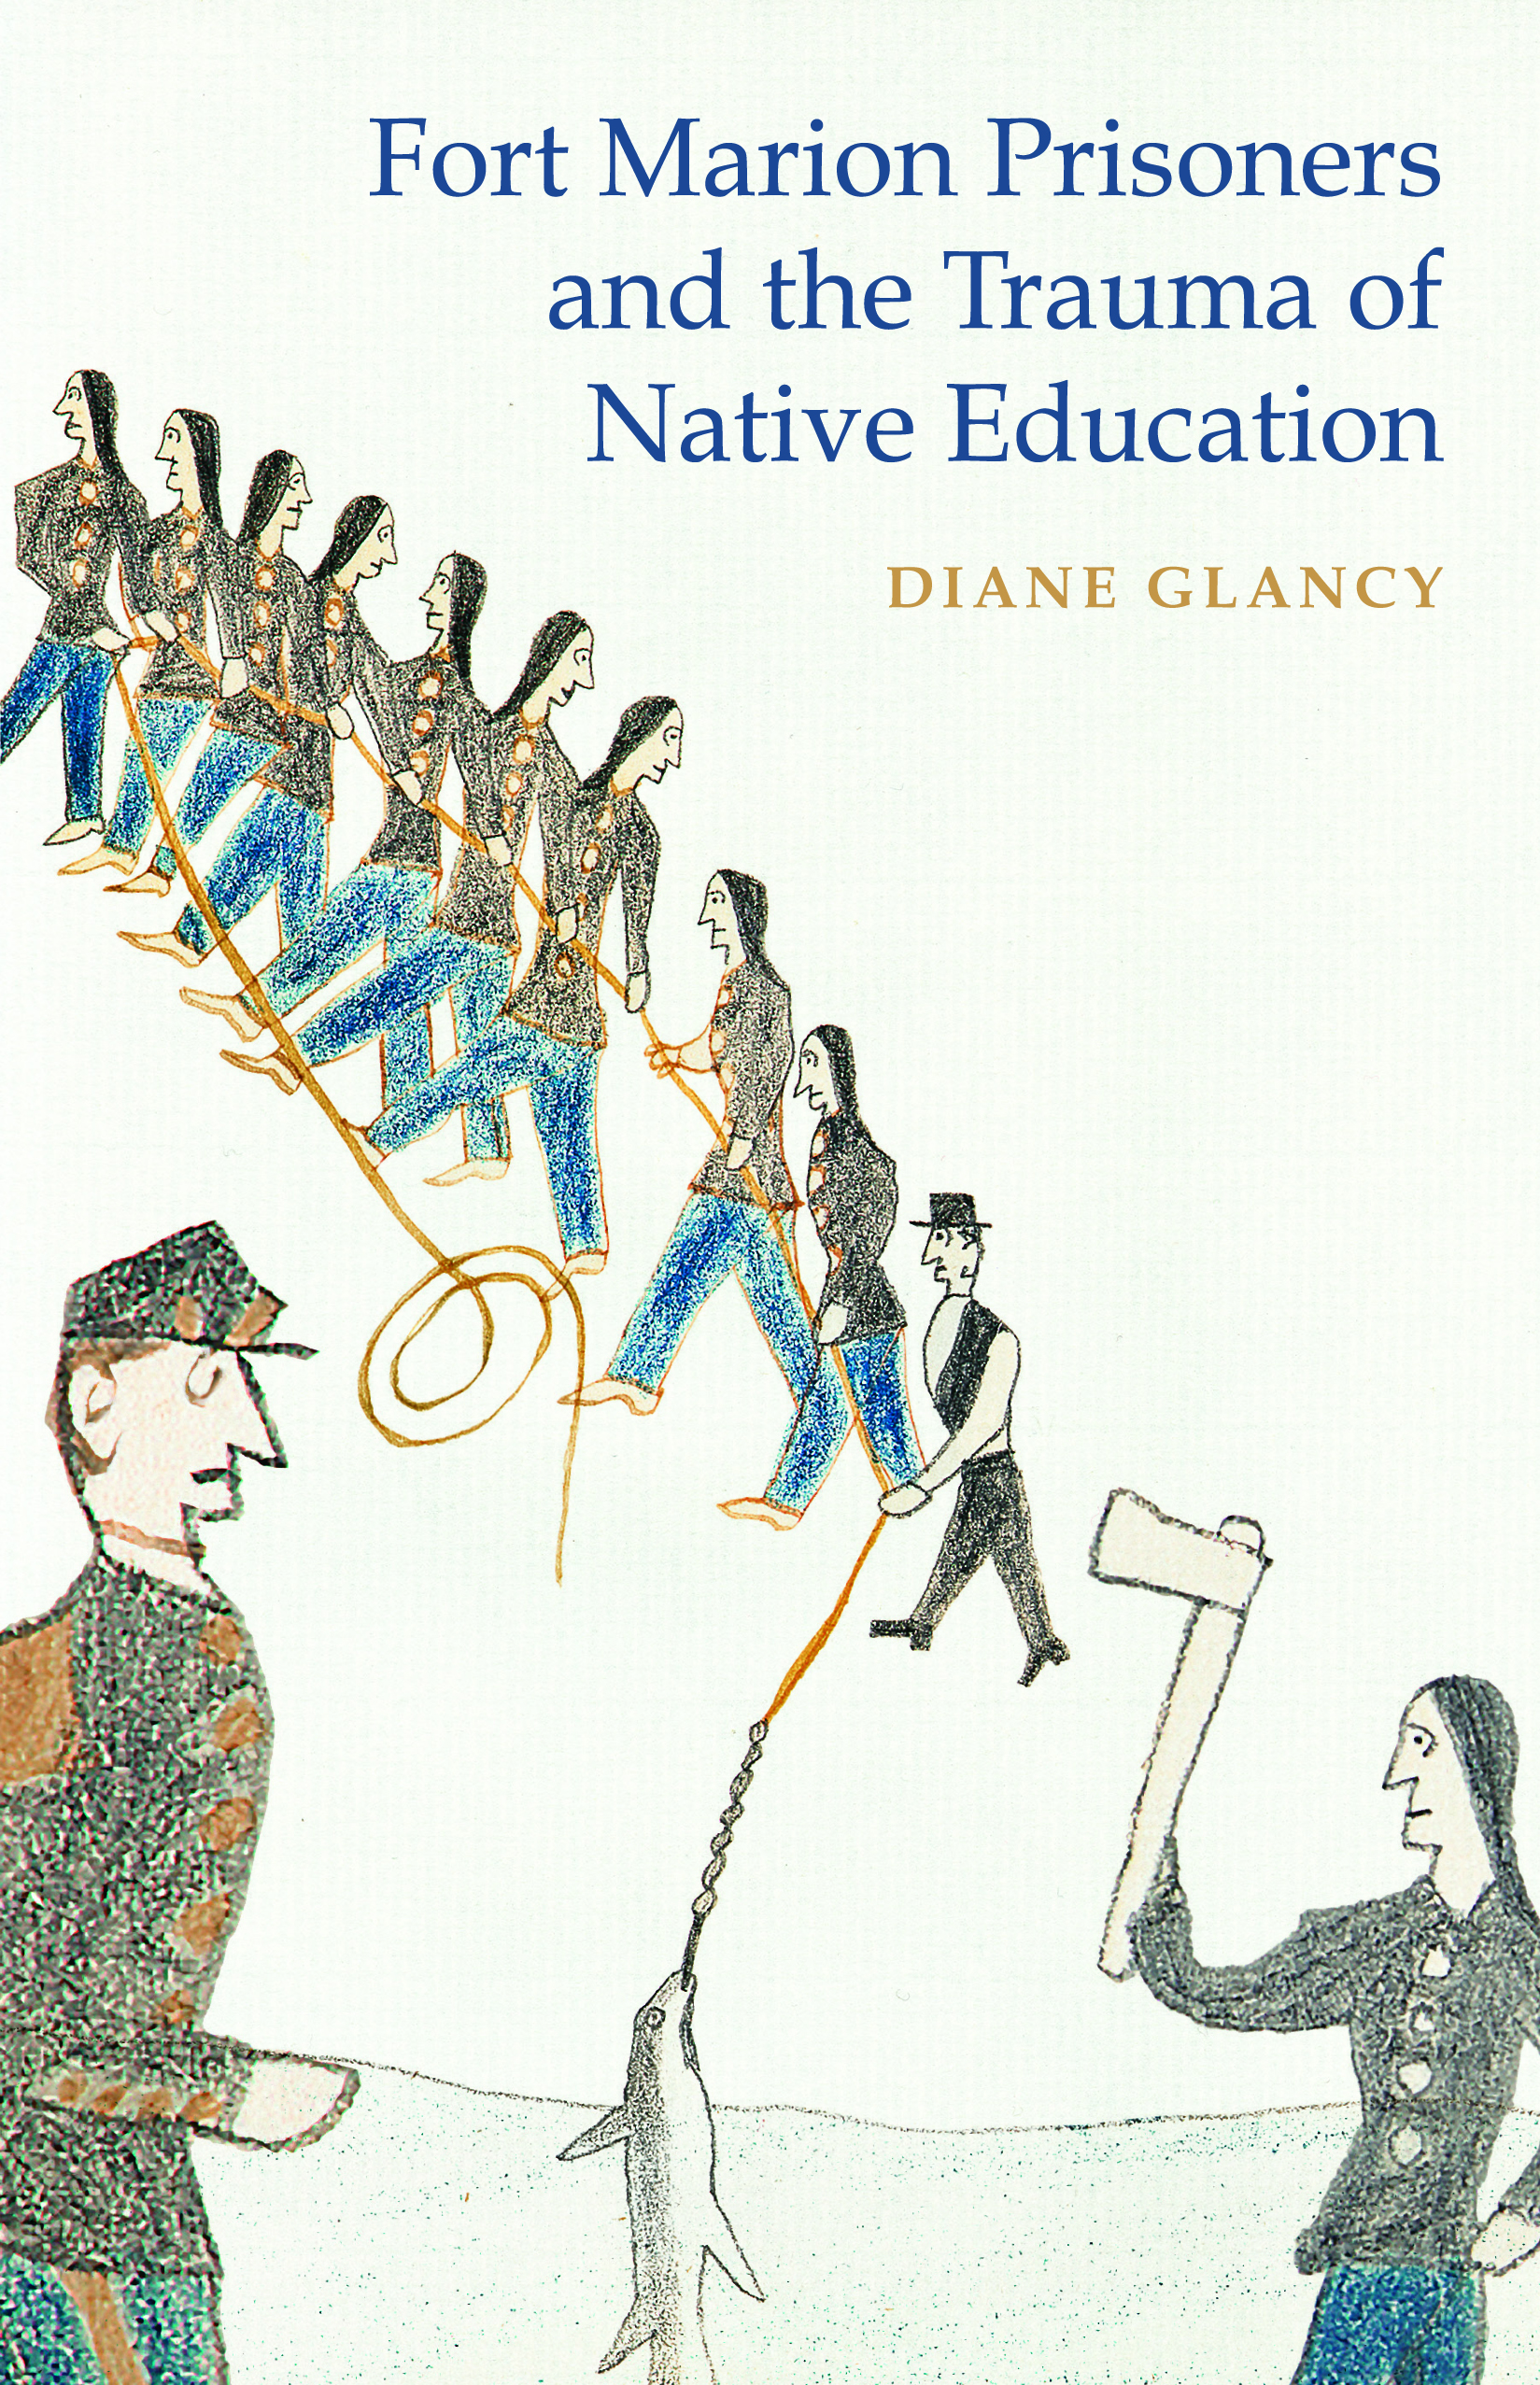 Fort Marion Prisoners and the Trauma of Native Education